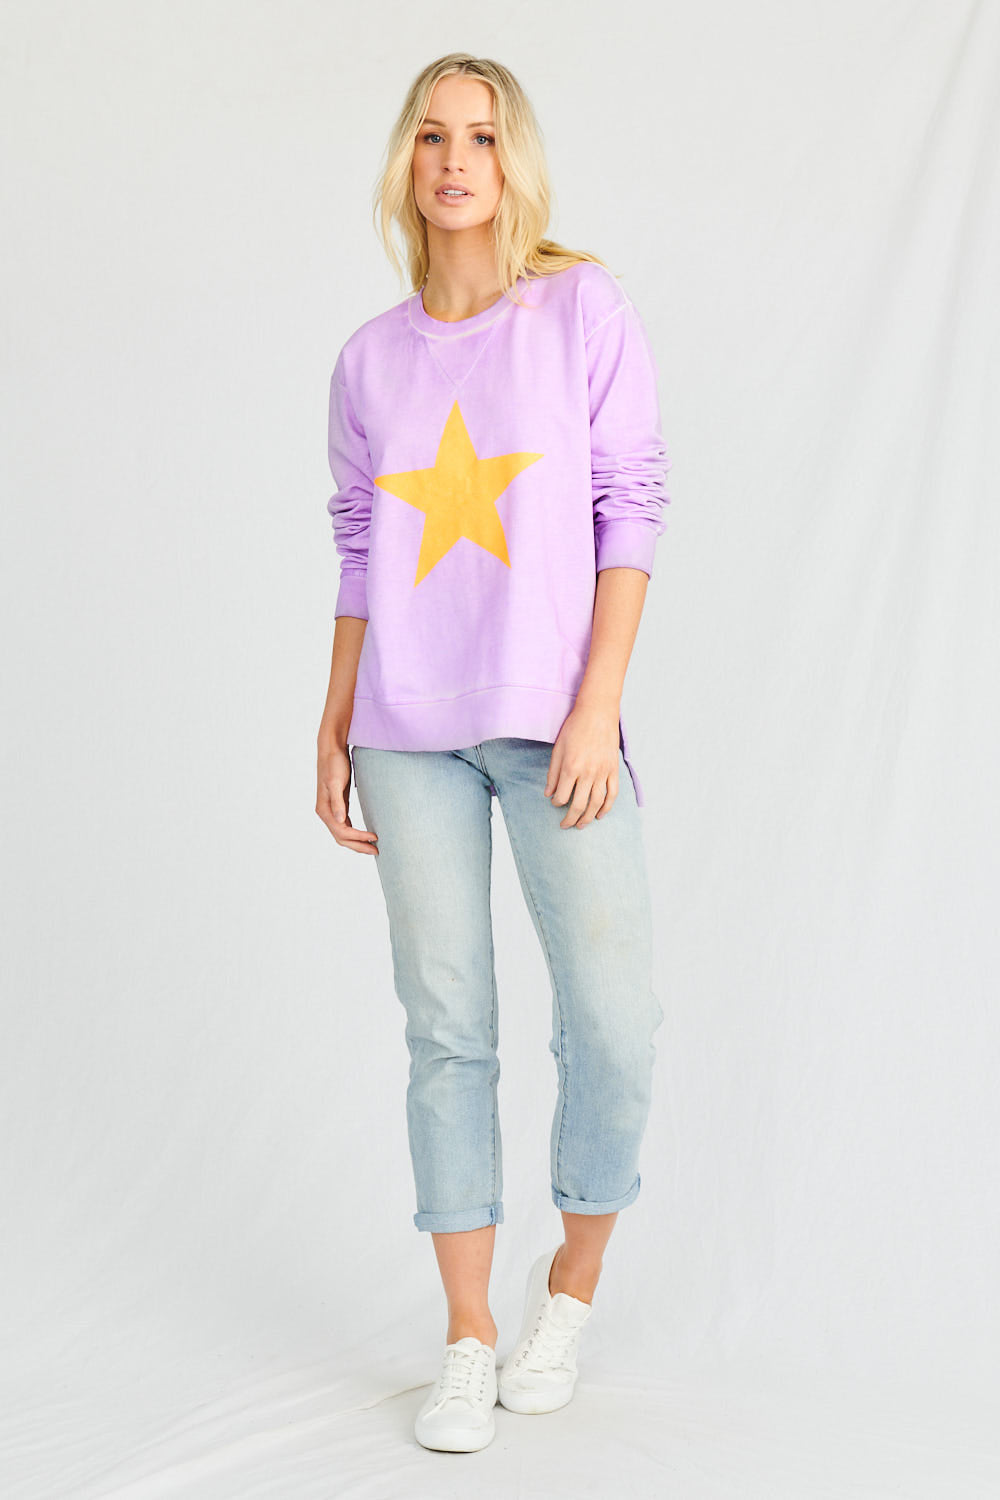 Stardust Crew Space Age Sweater - Glitter Star Jumper Glitter Star Sweater - Stardust Crew Stockist Basic State Australia Lilac Stardust Crew Jumper